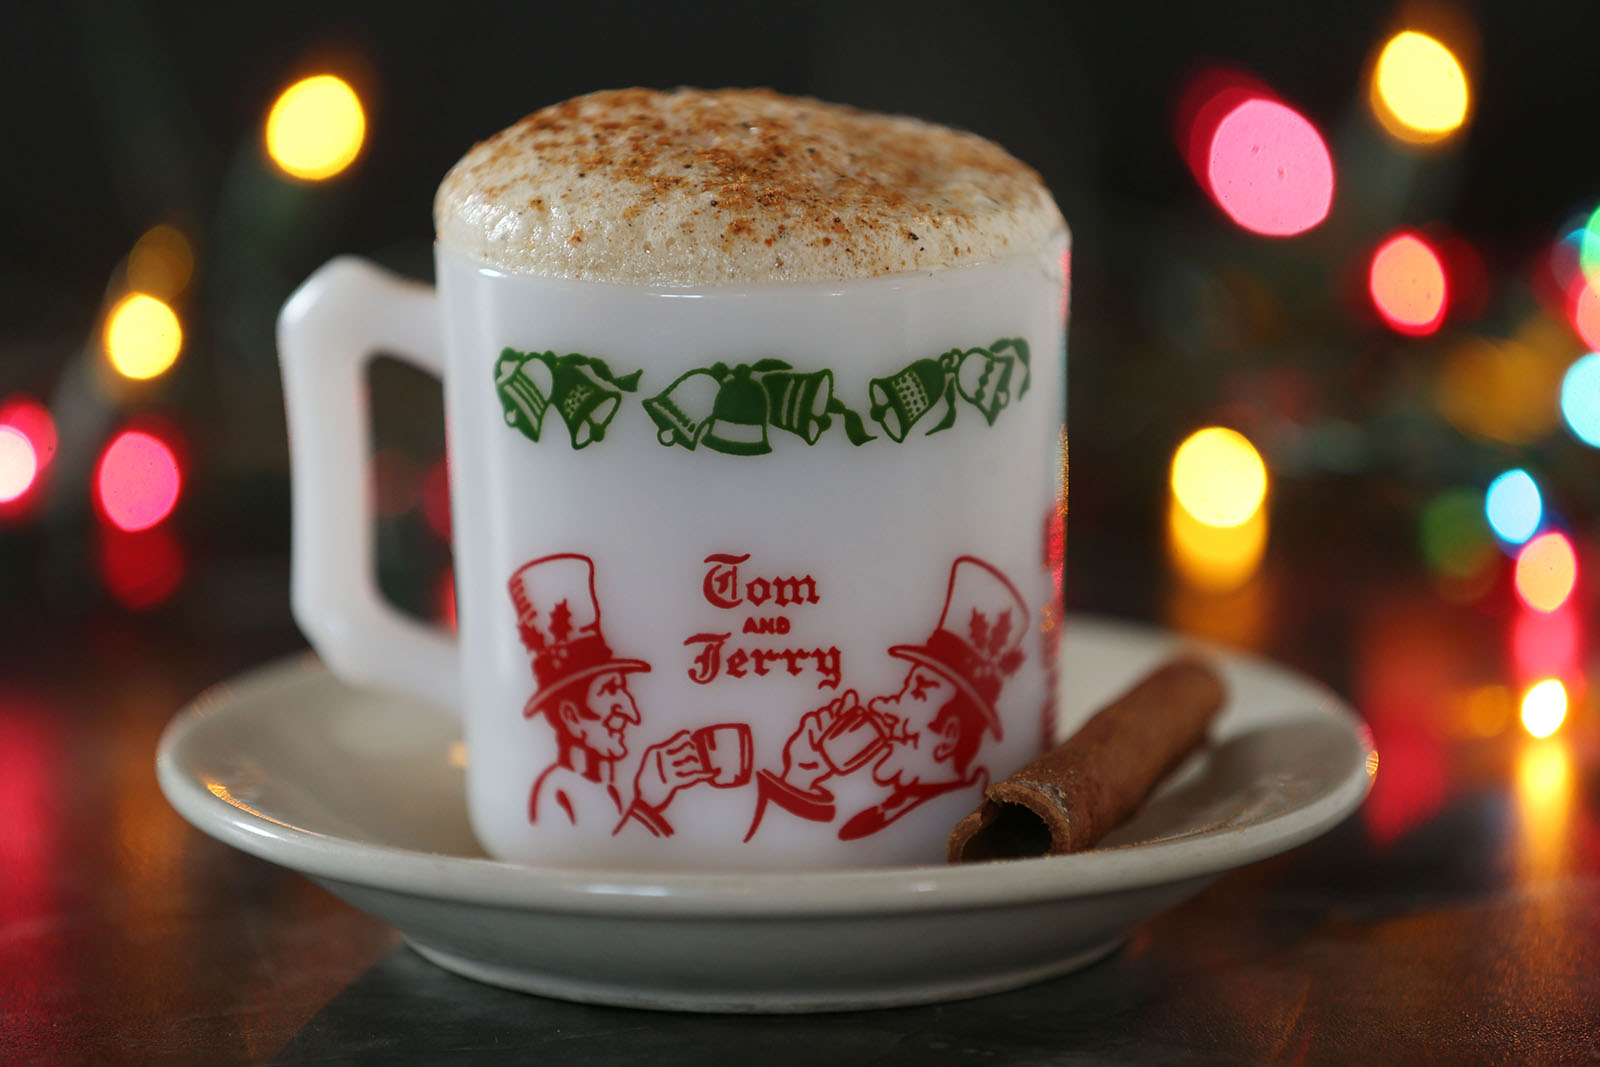 The traditional Christmas cocktail at McPartlan's Corner on Wehrle Drive in Amherst, the Tom & Jerry. It's made with rum, brandy and hot water added to a mixture of their special batter and meringue. (Sharon Cantillon/Buffalo News)